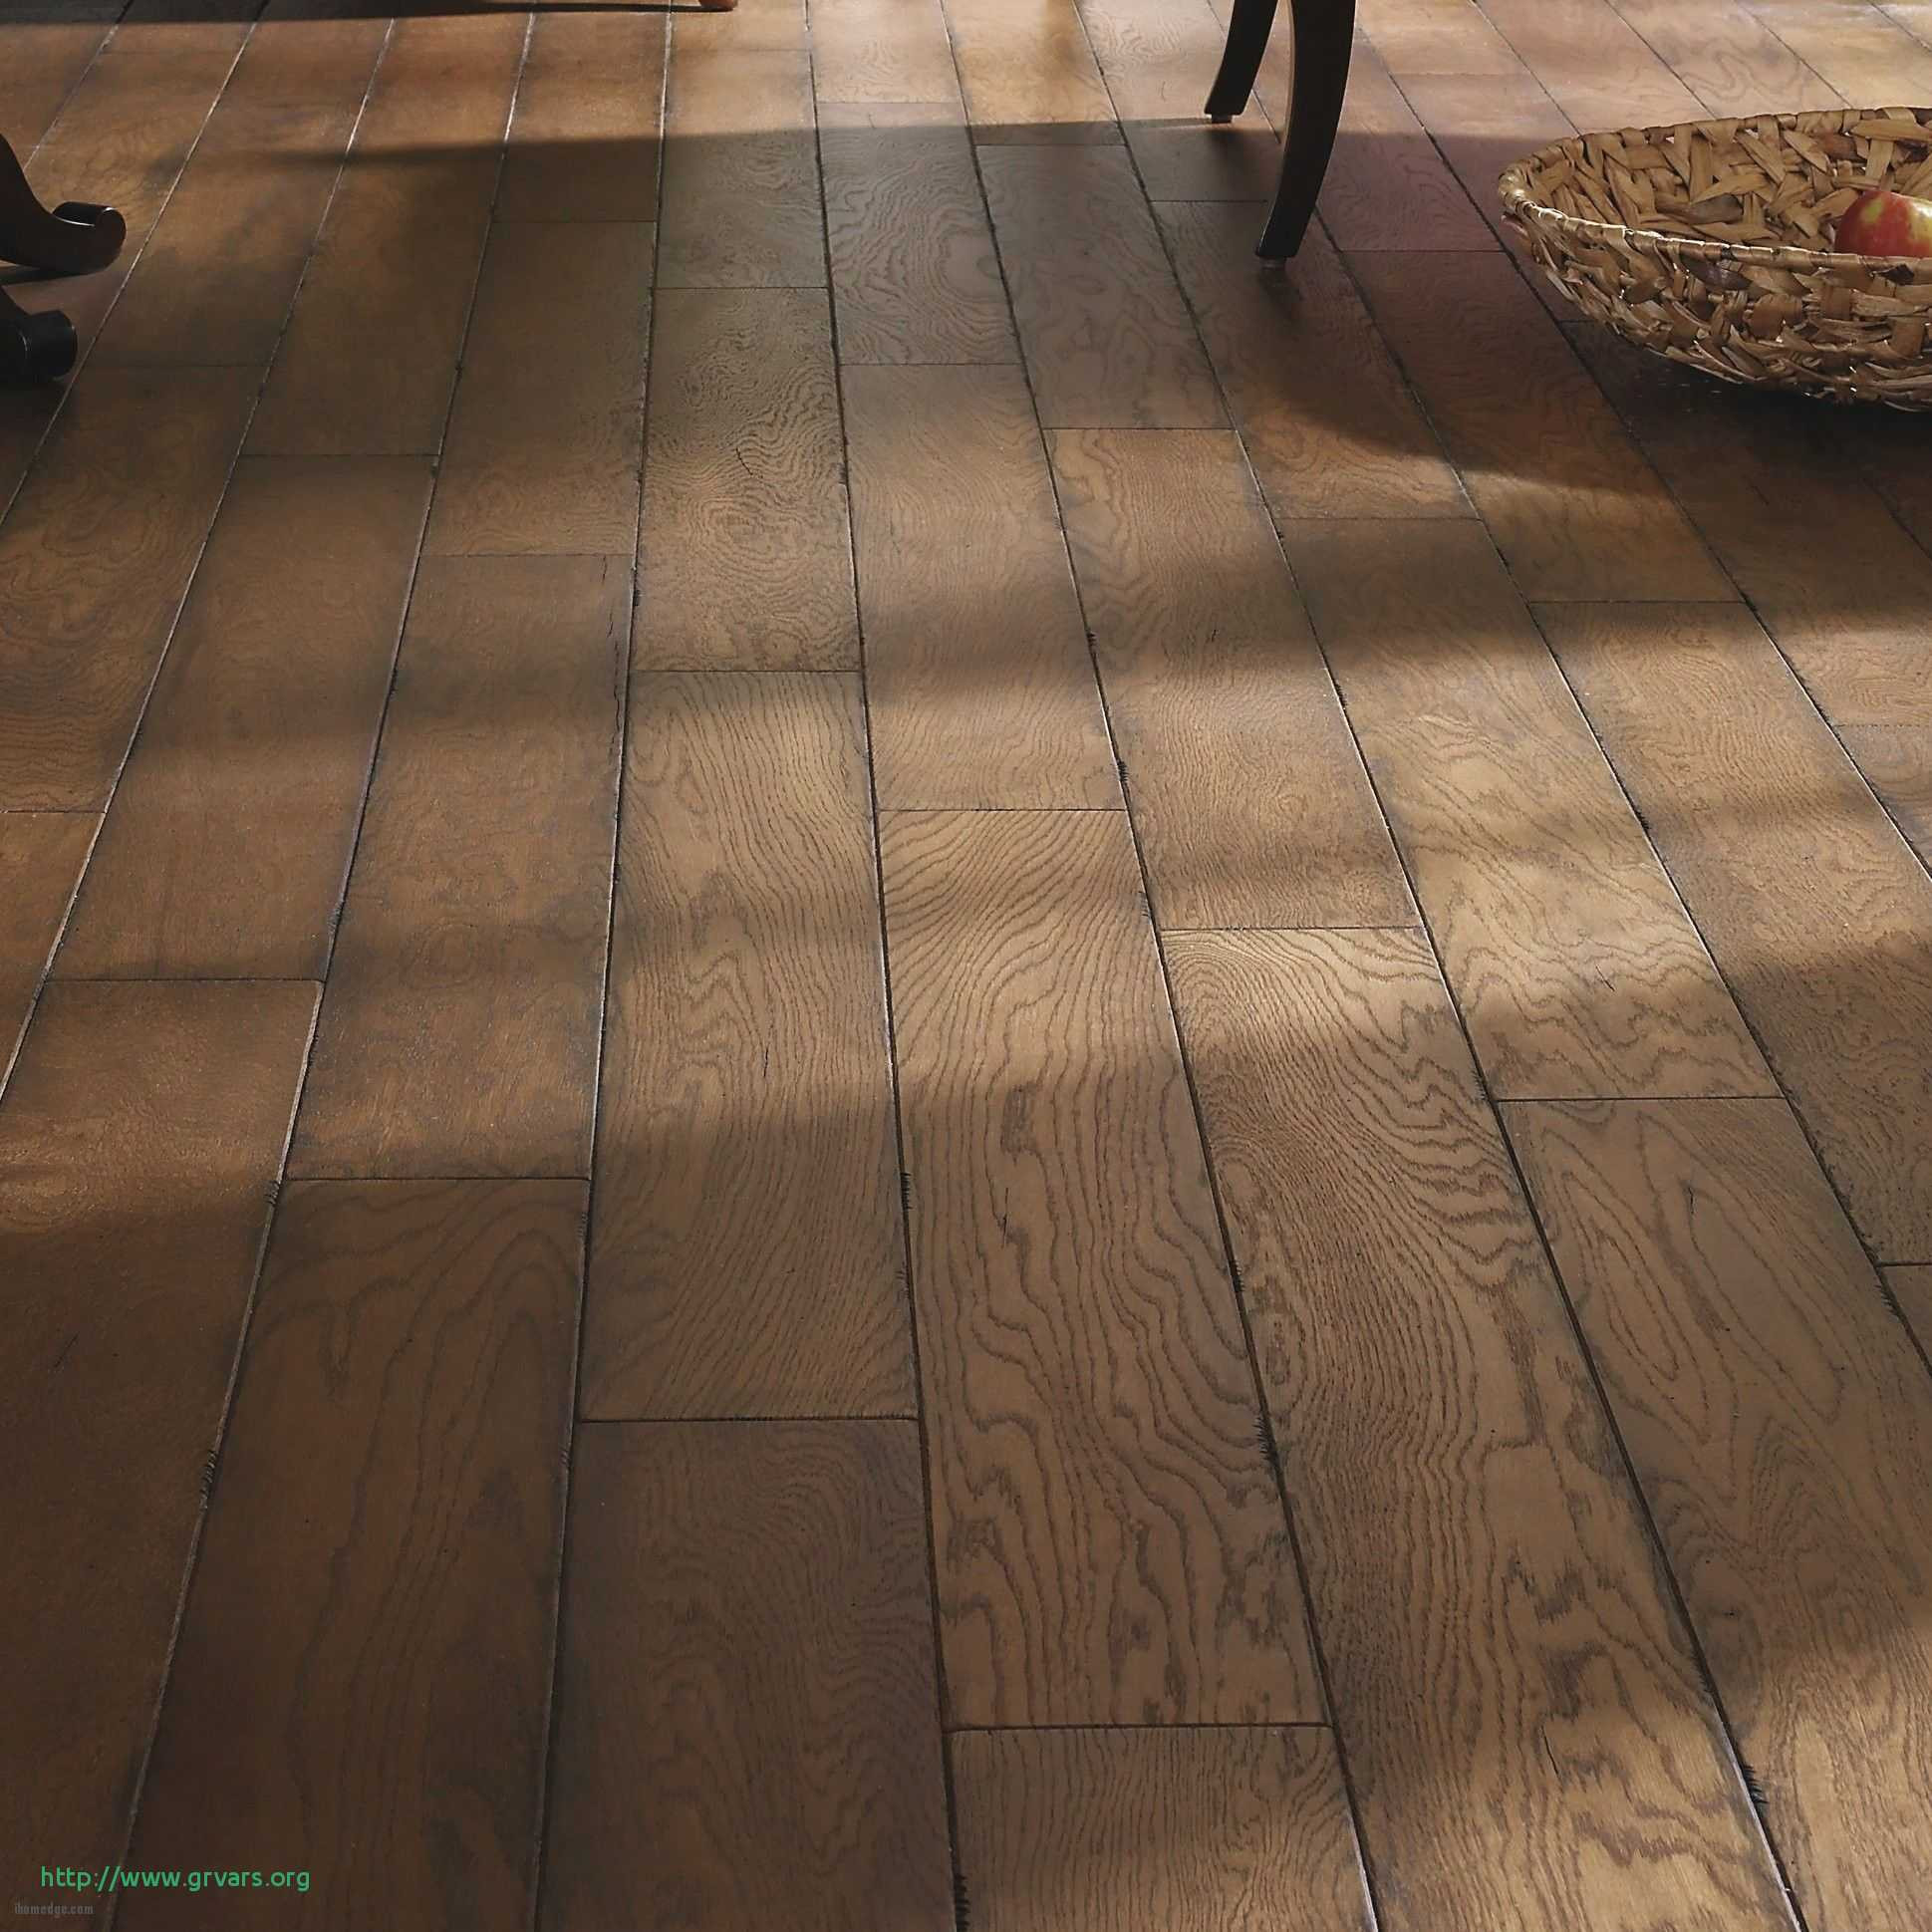 17 Great Menards Hardwood Flooring Reviews Unique Flooring Ideas